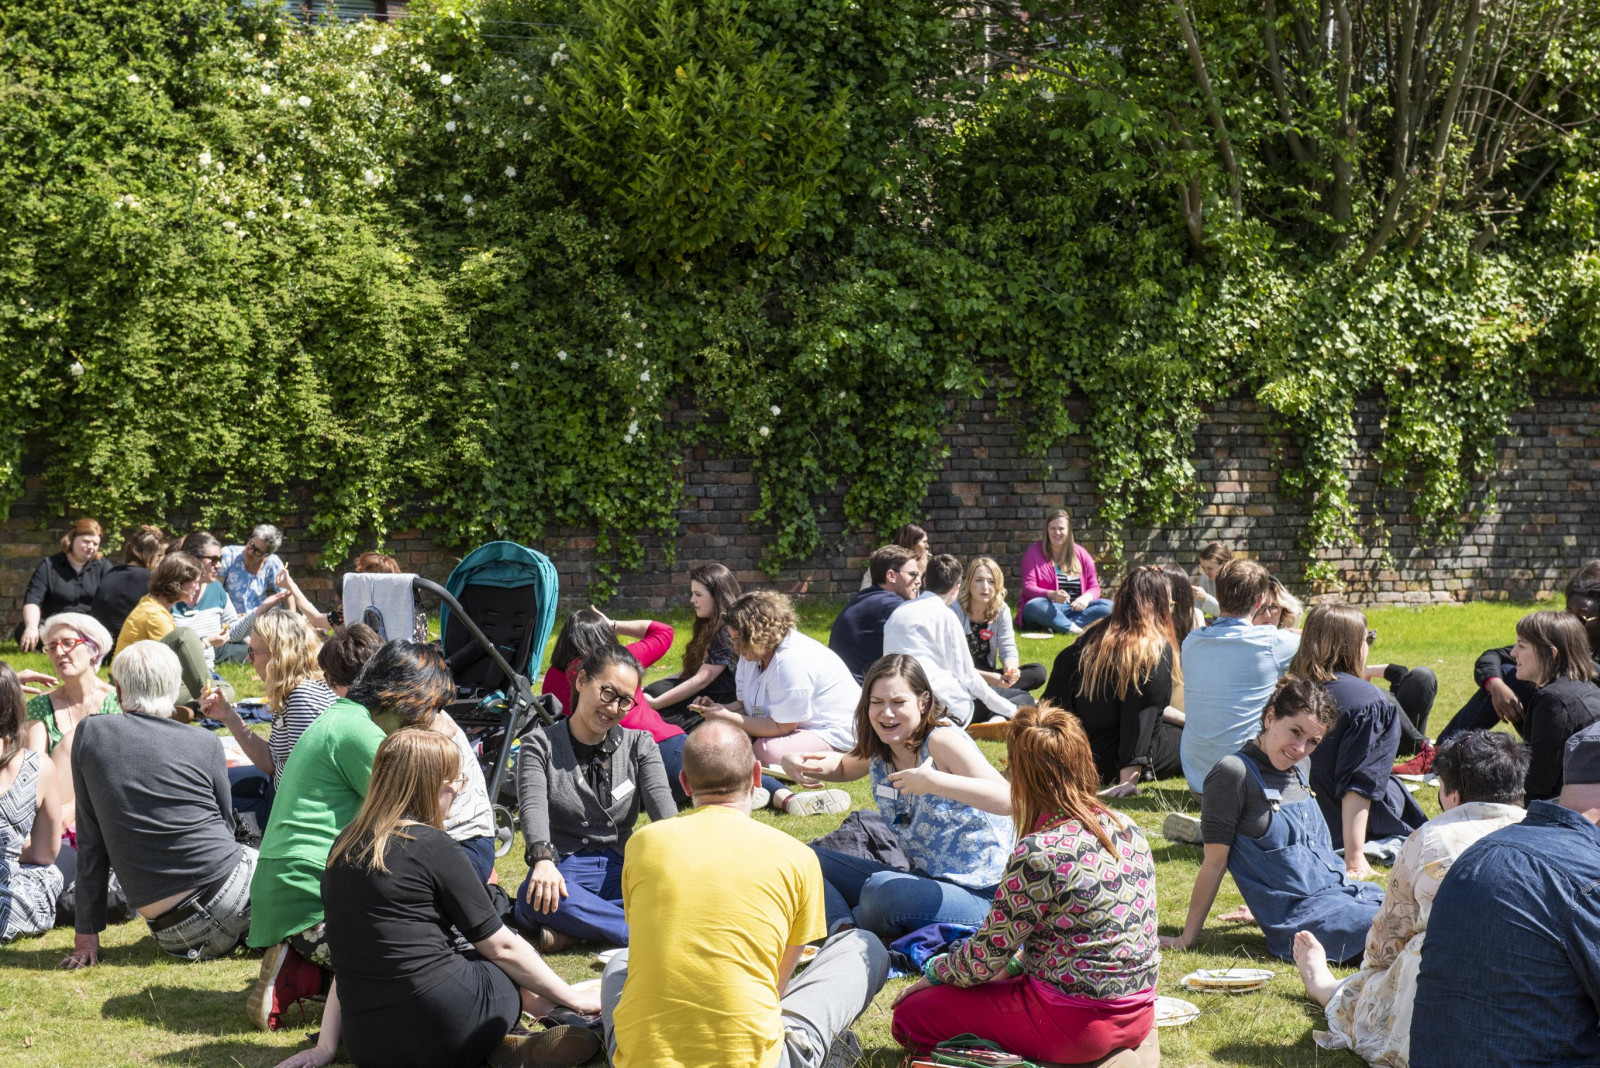 In a large grassy, green space surrounded by trees is busy with people sitting in groups on the grass.